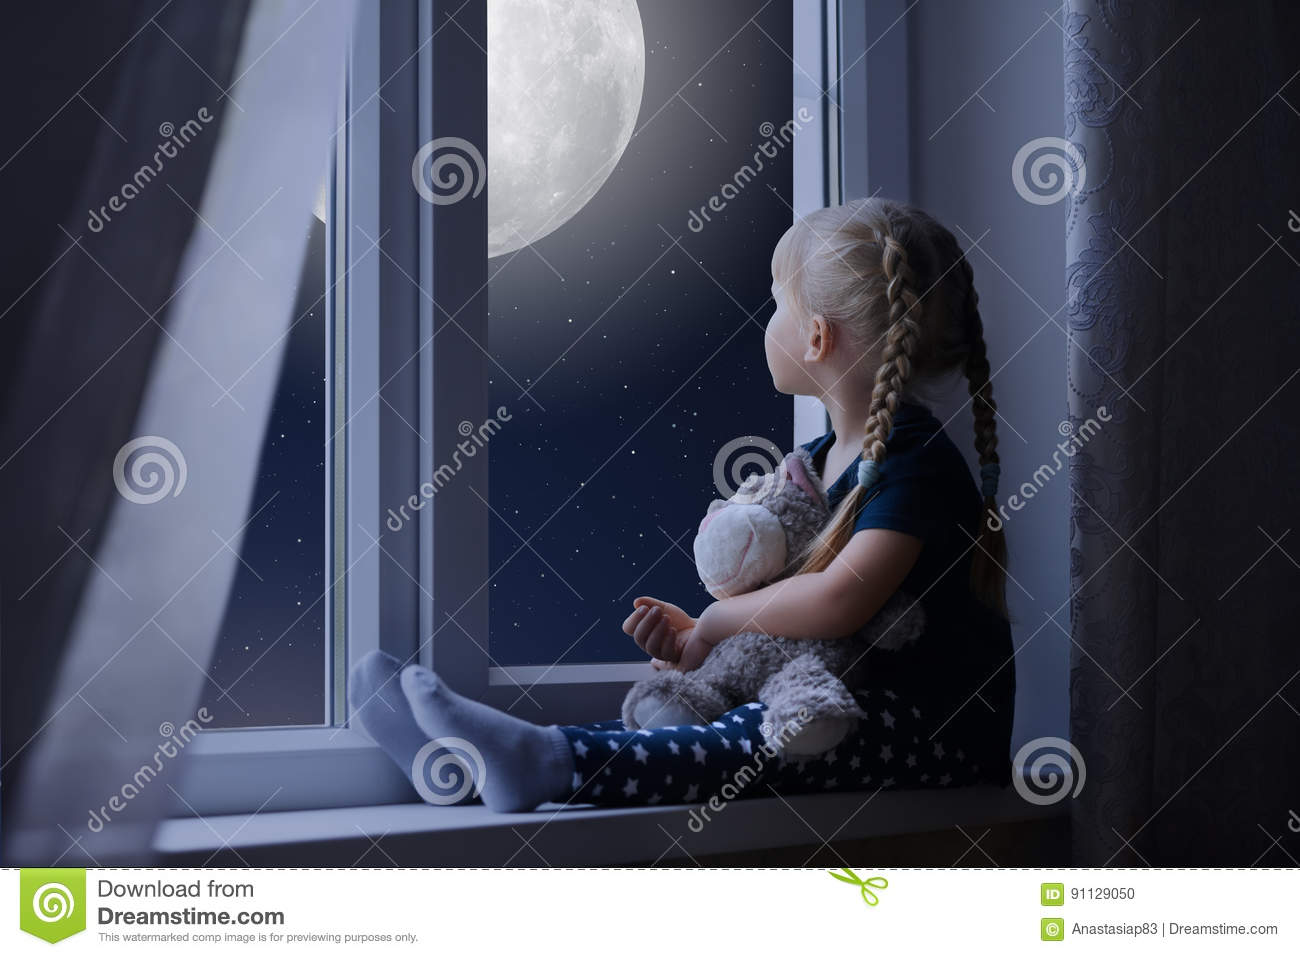 Little girl looking at the starry sky and moon